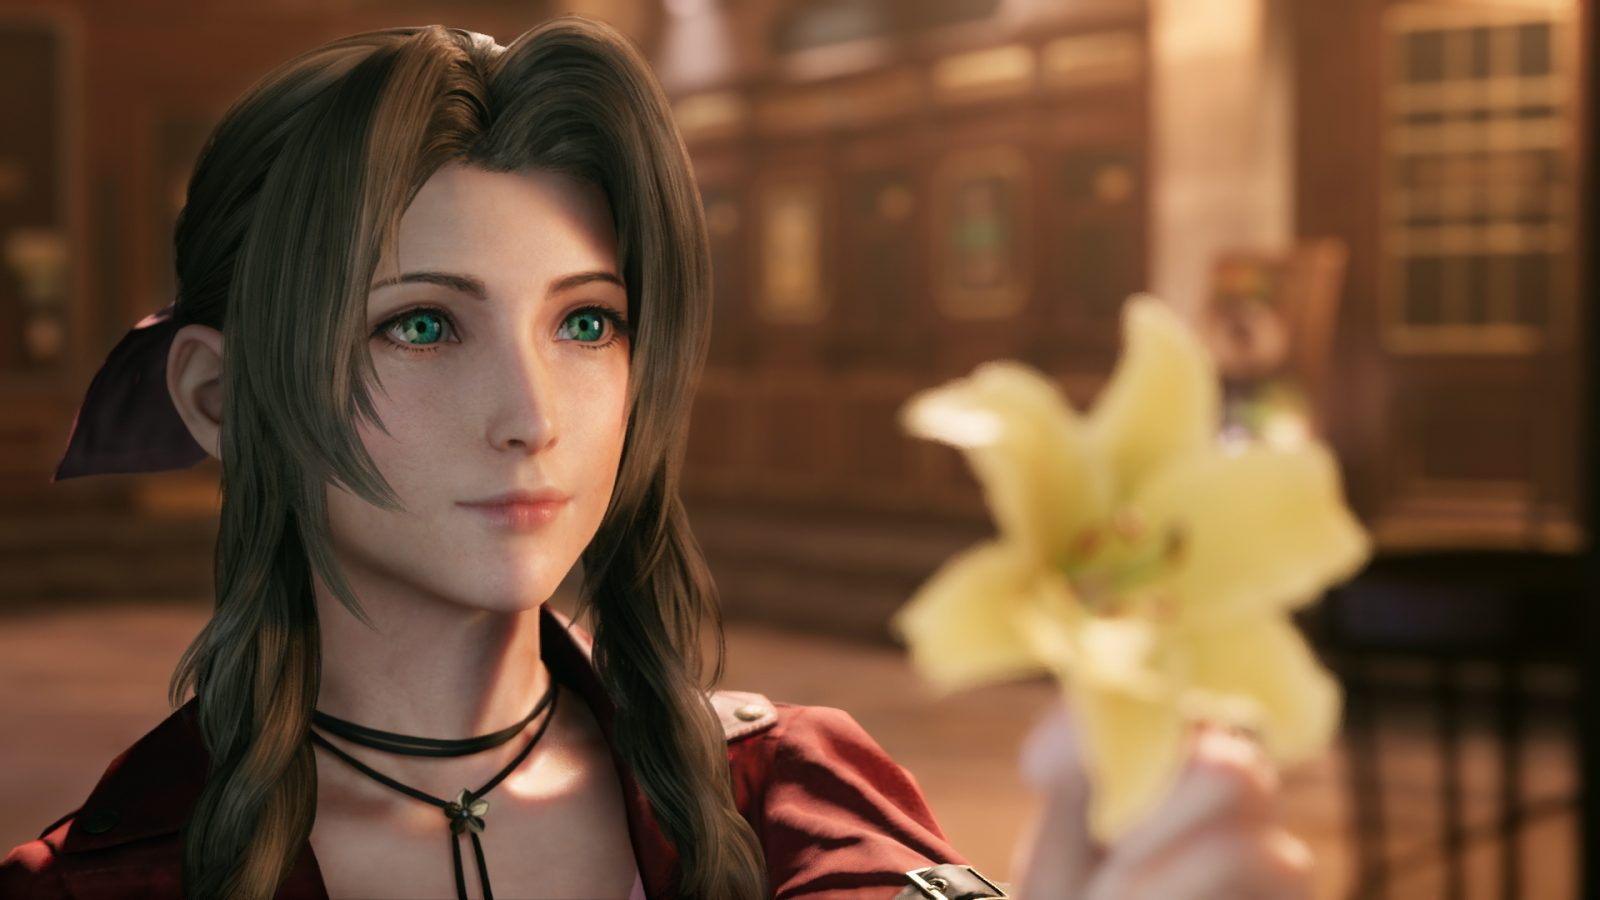 FF7 Remake leaks trace at a PC port